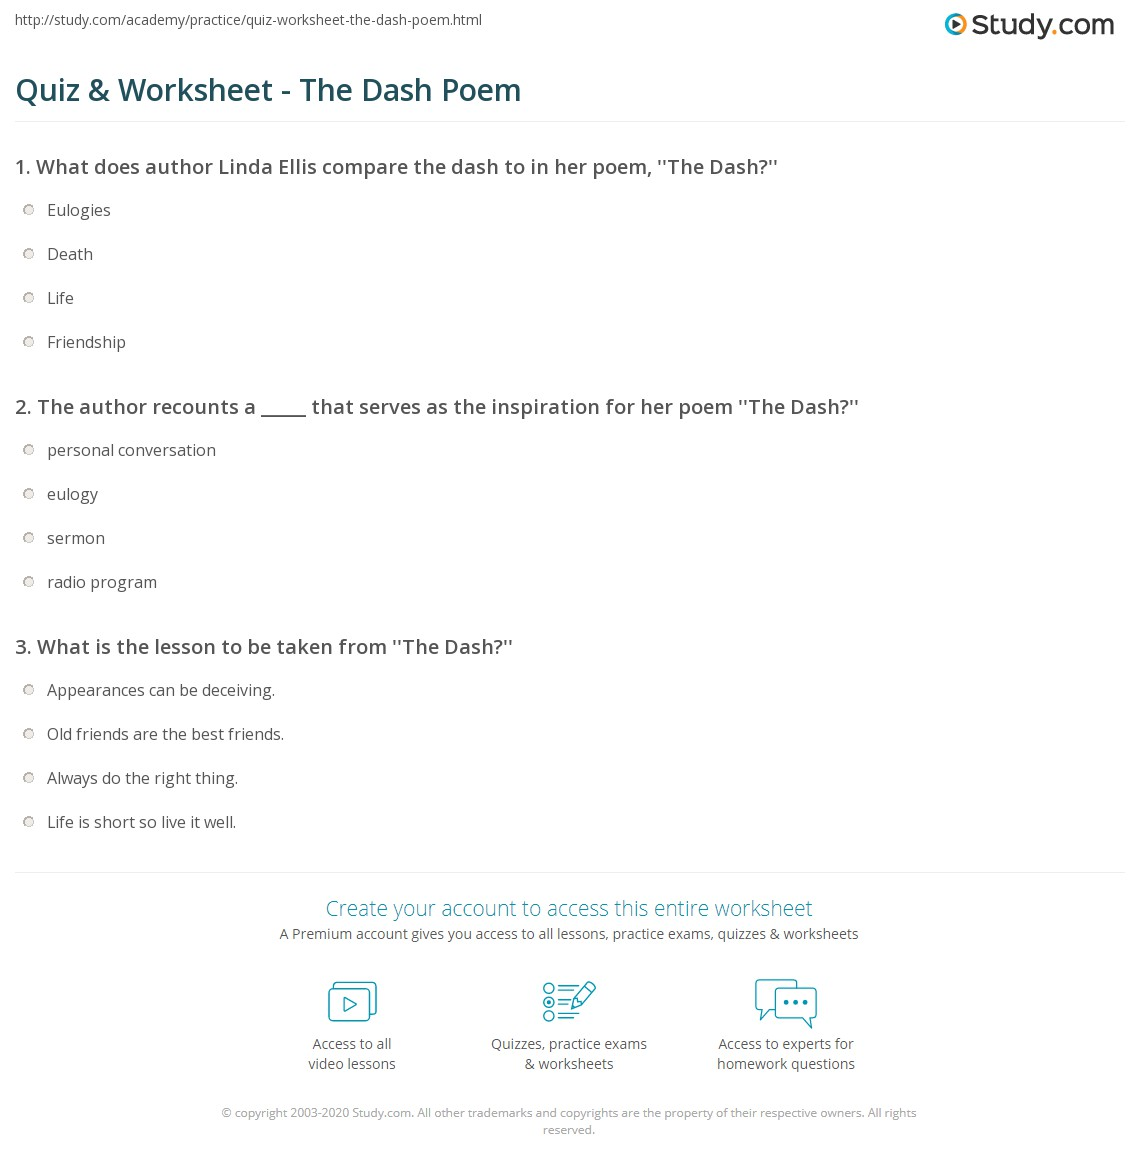 image regarding Poem the Dash Printable named Quiz Worksheet - The Sprint Poem